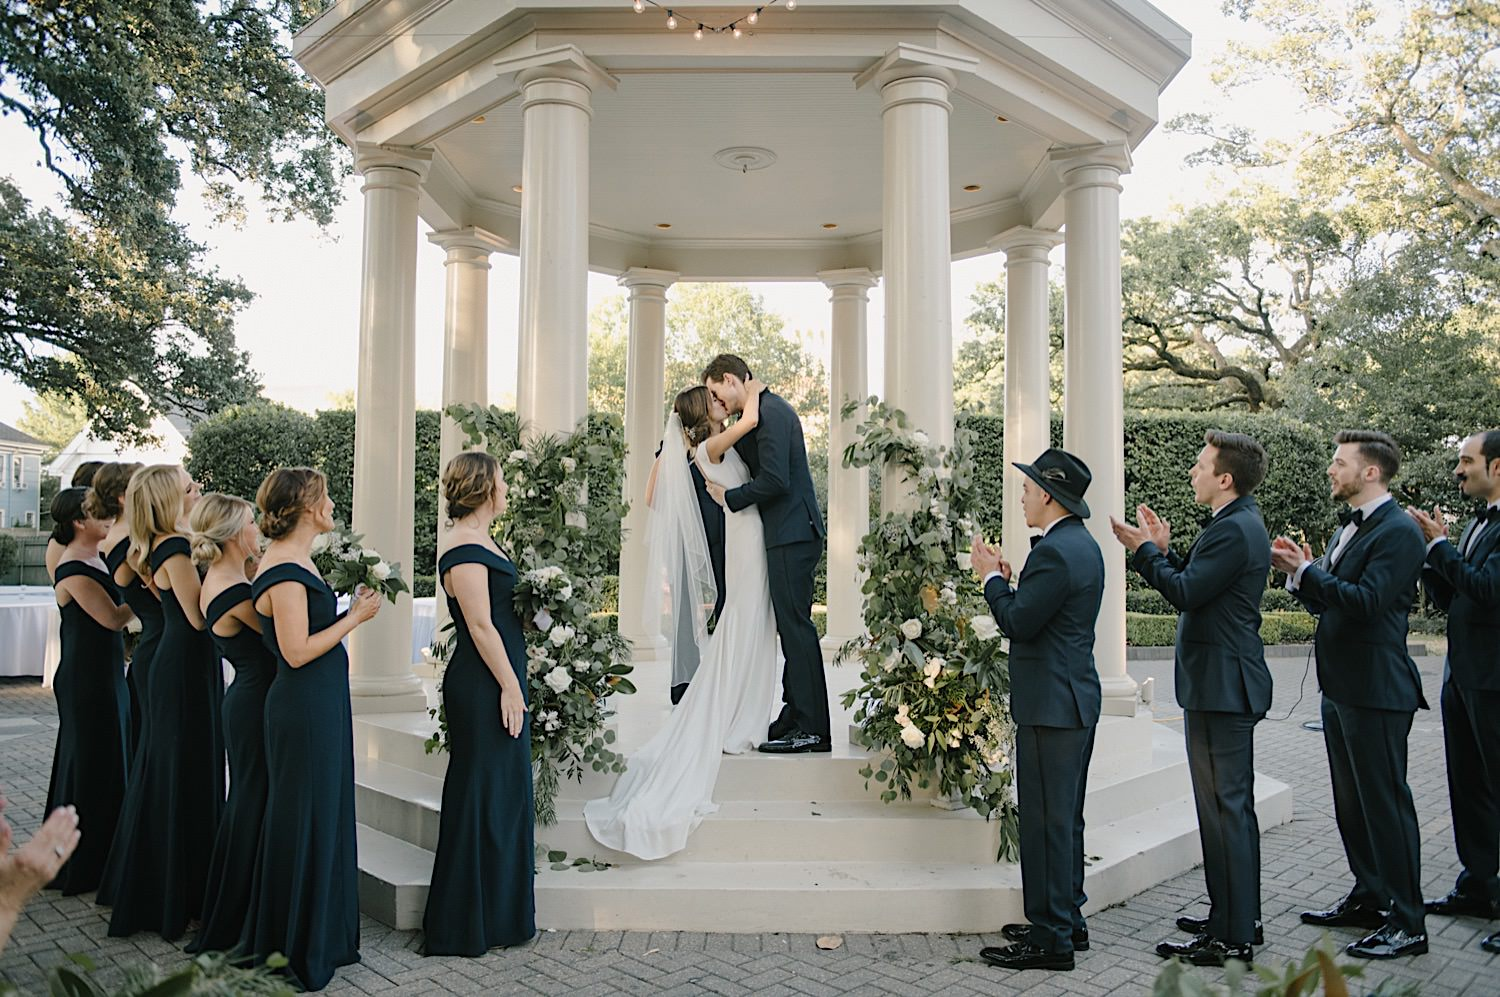 Taylor and Logan seal their ceremony with a first kiss at the Elms Mansion.